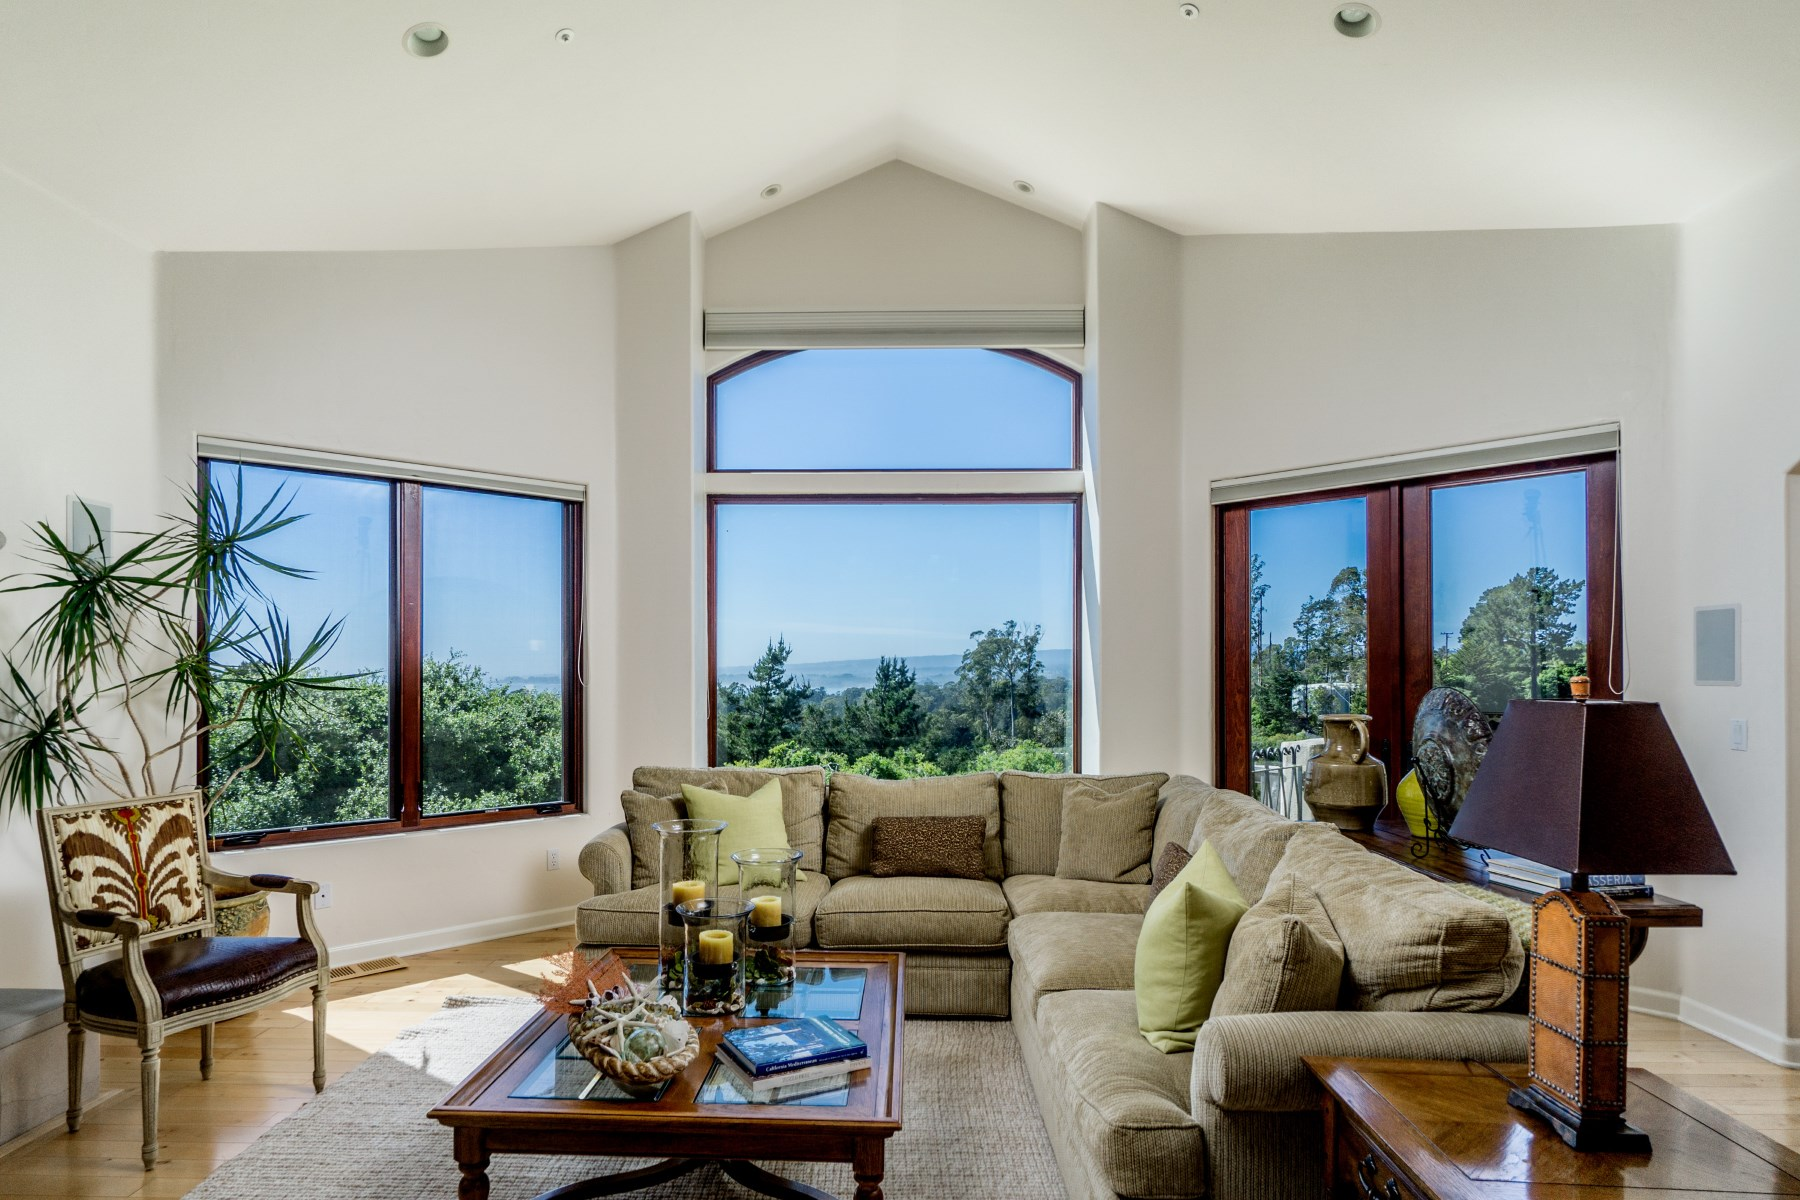 Single Family Home for Sale at Ocean Views from Monterey to Santa Cruz 563 Cuesta Drive Aptos, California 95003 United States